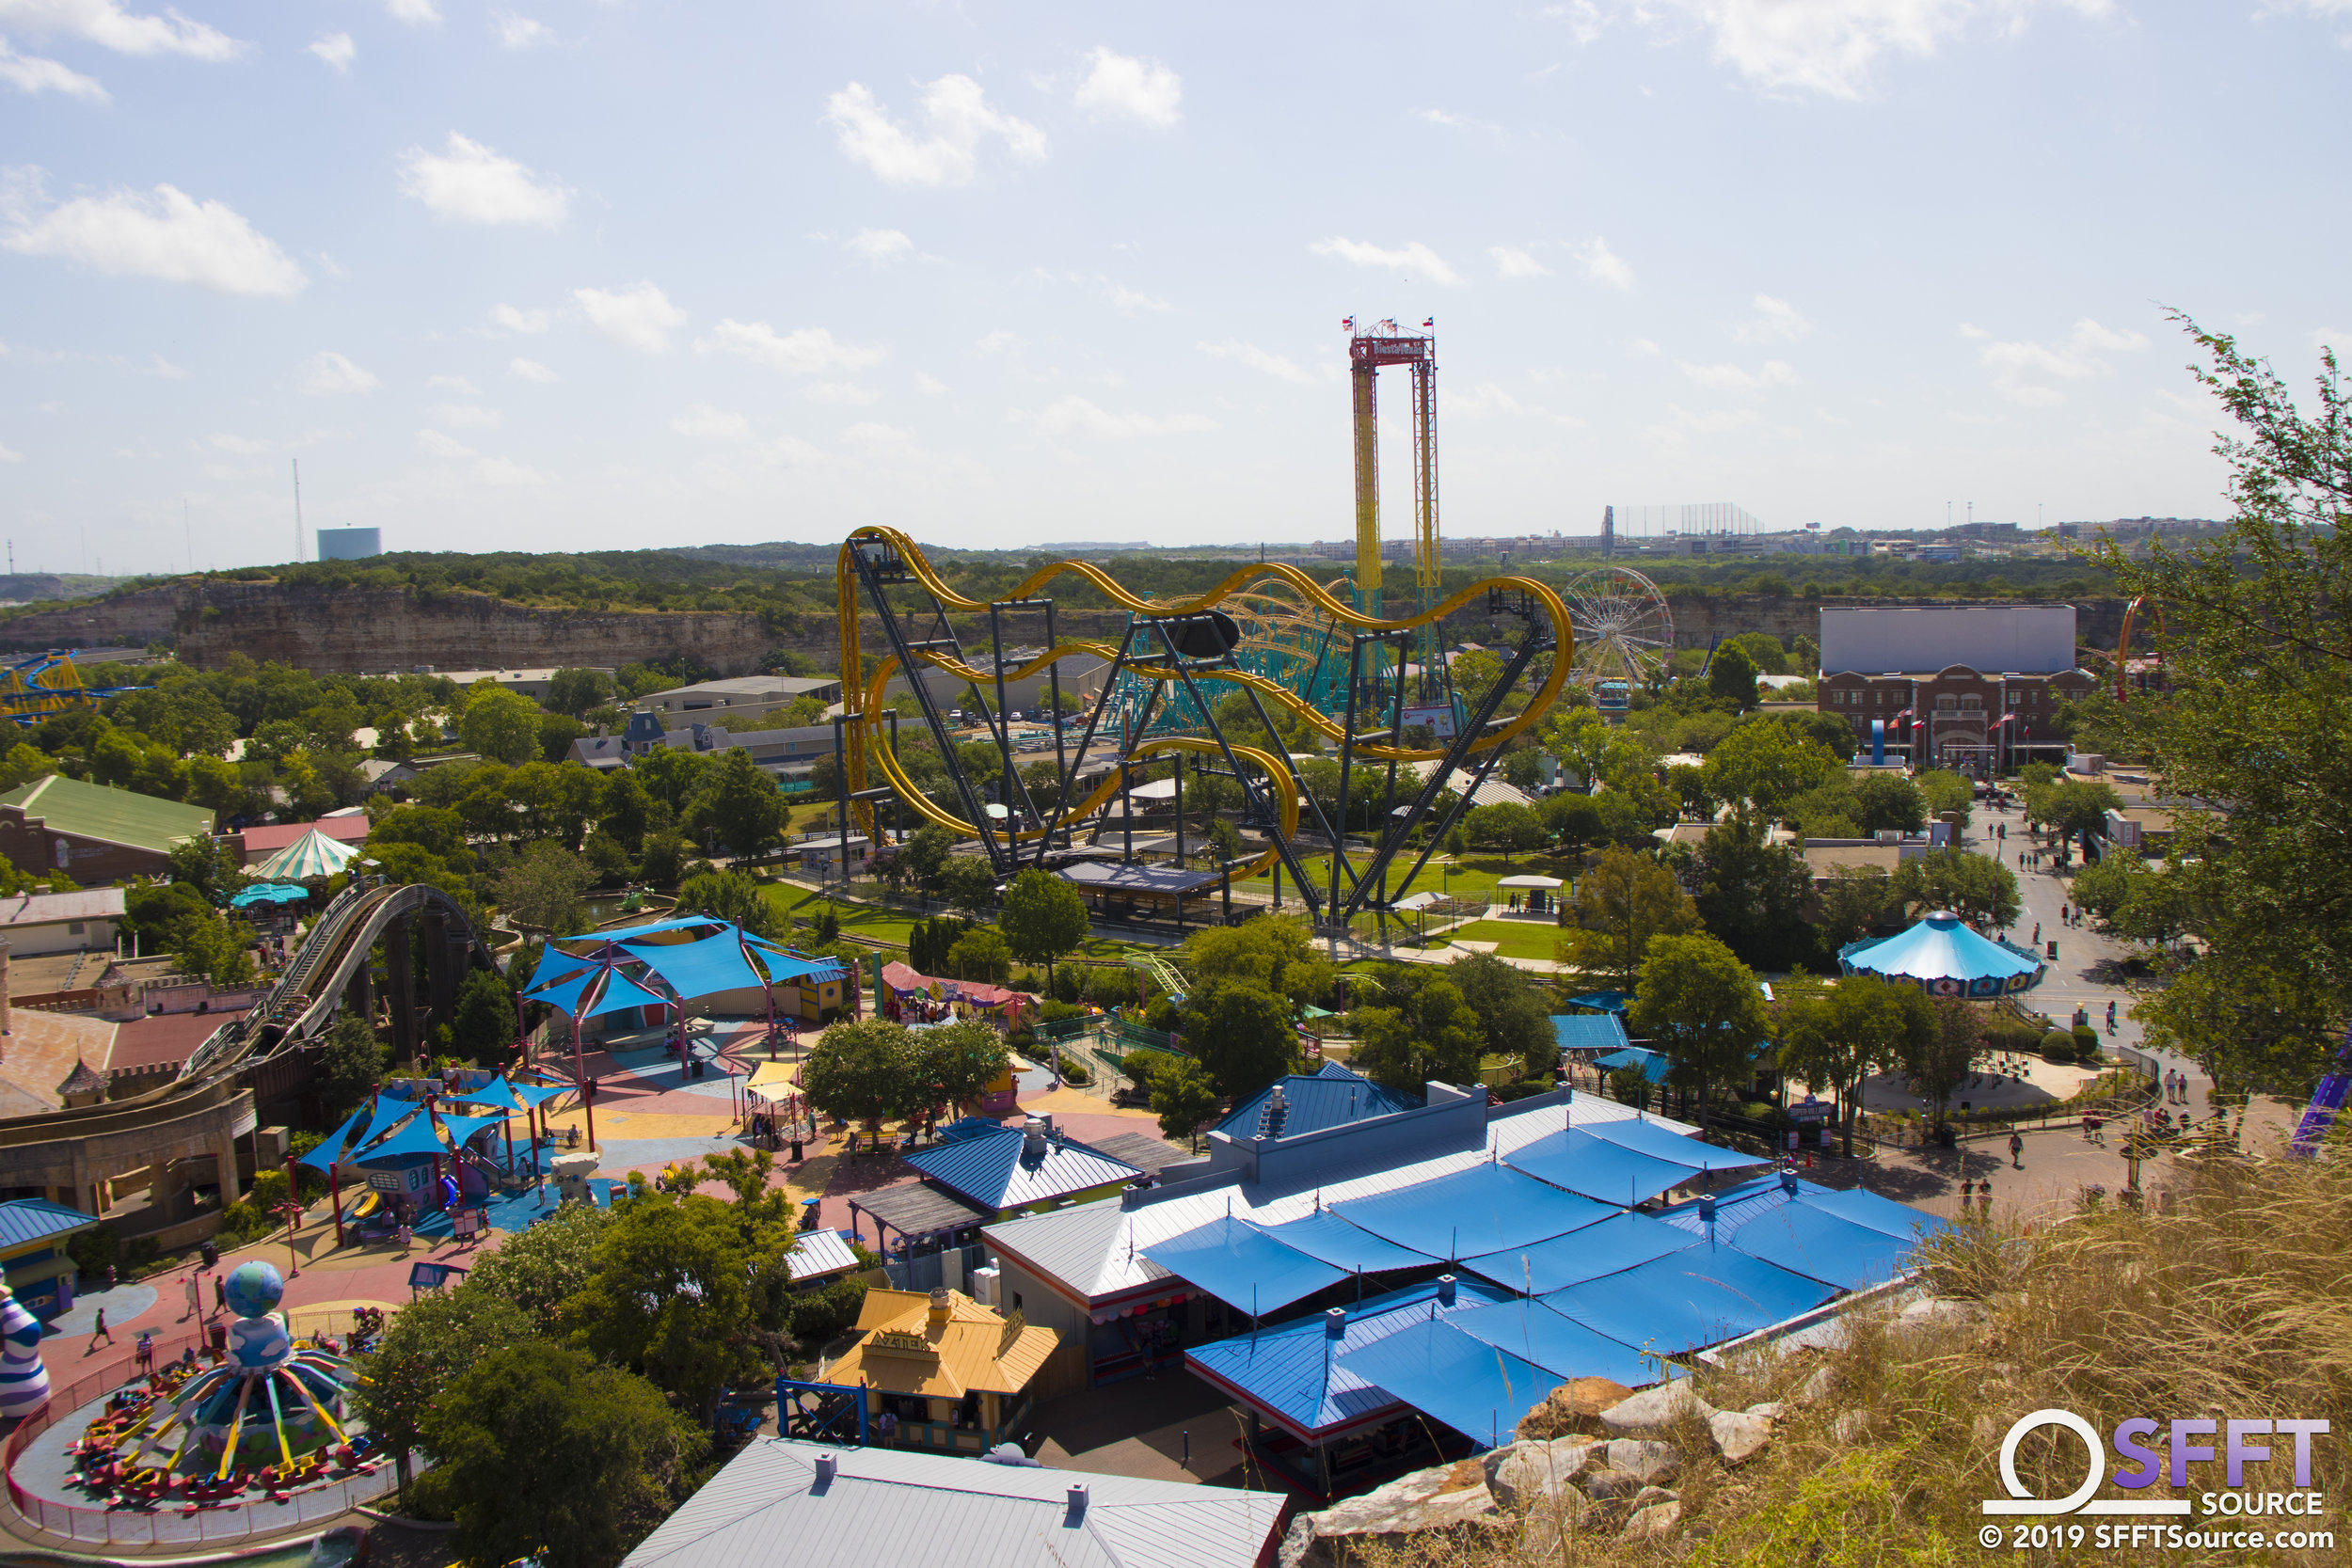 An aerial view of Kidzopolis from the park's quarry wall.